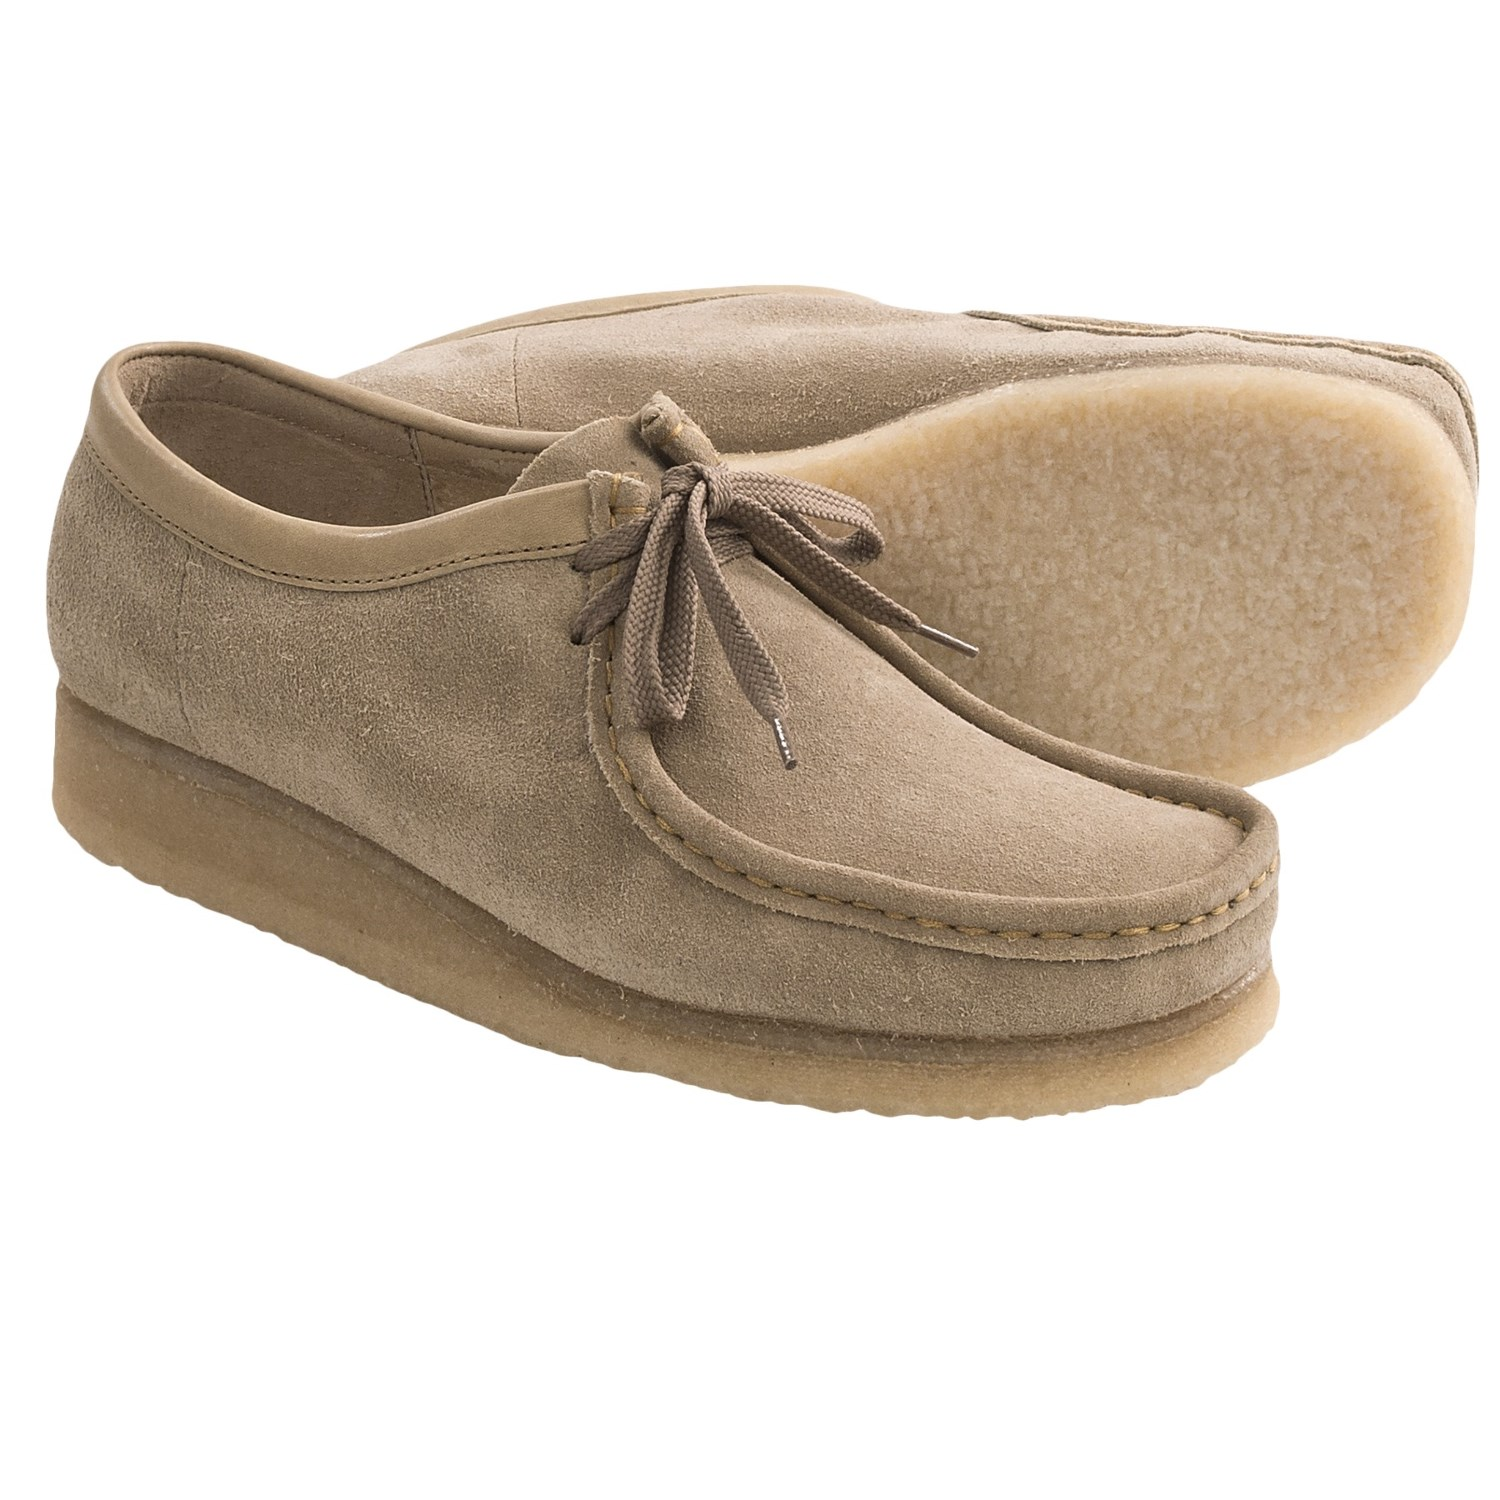 clarks shoes for 28 images clarks un shoes for in